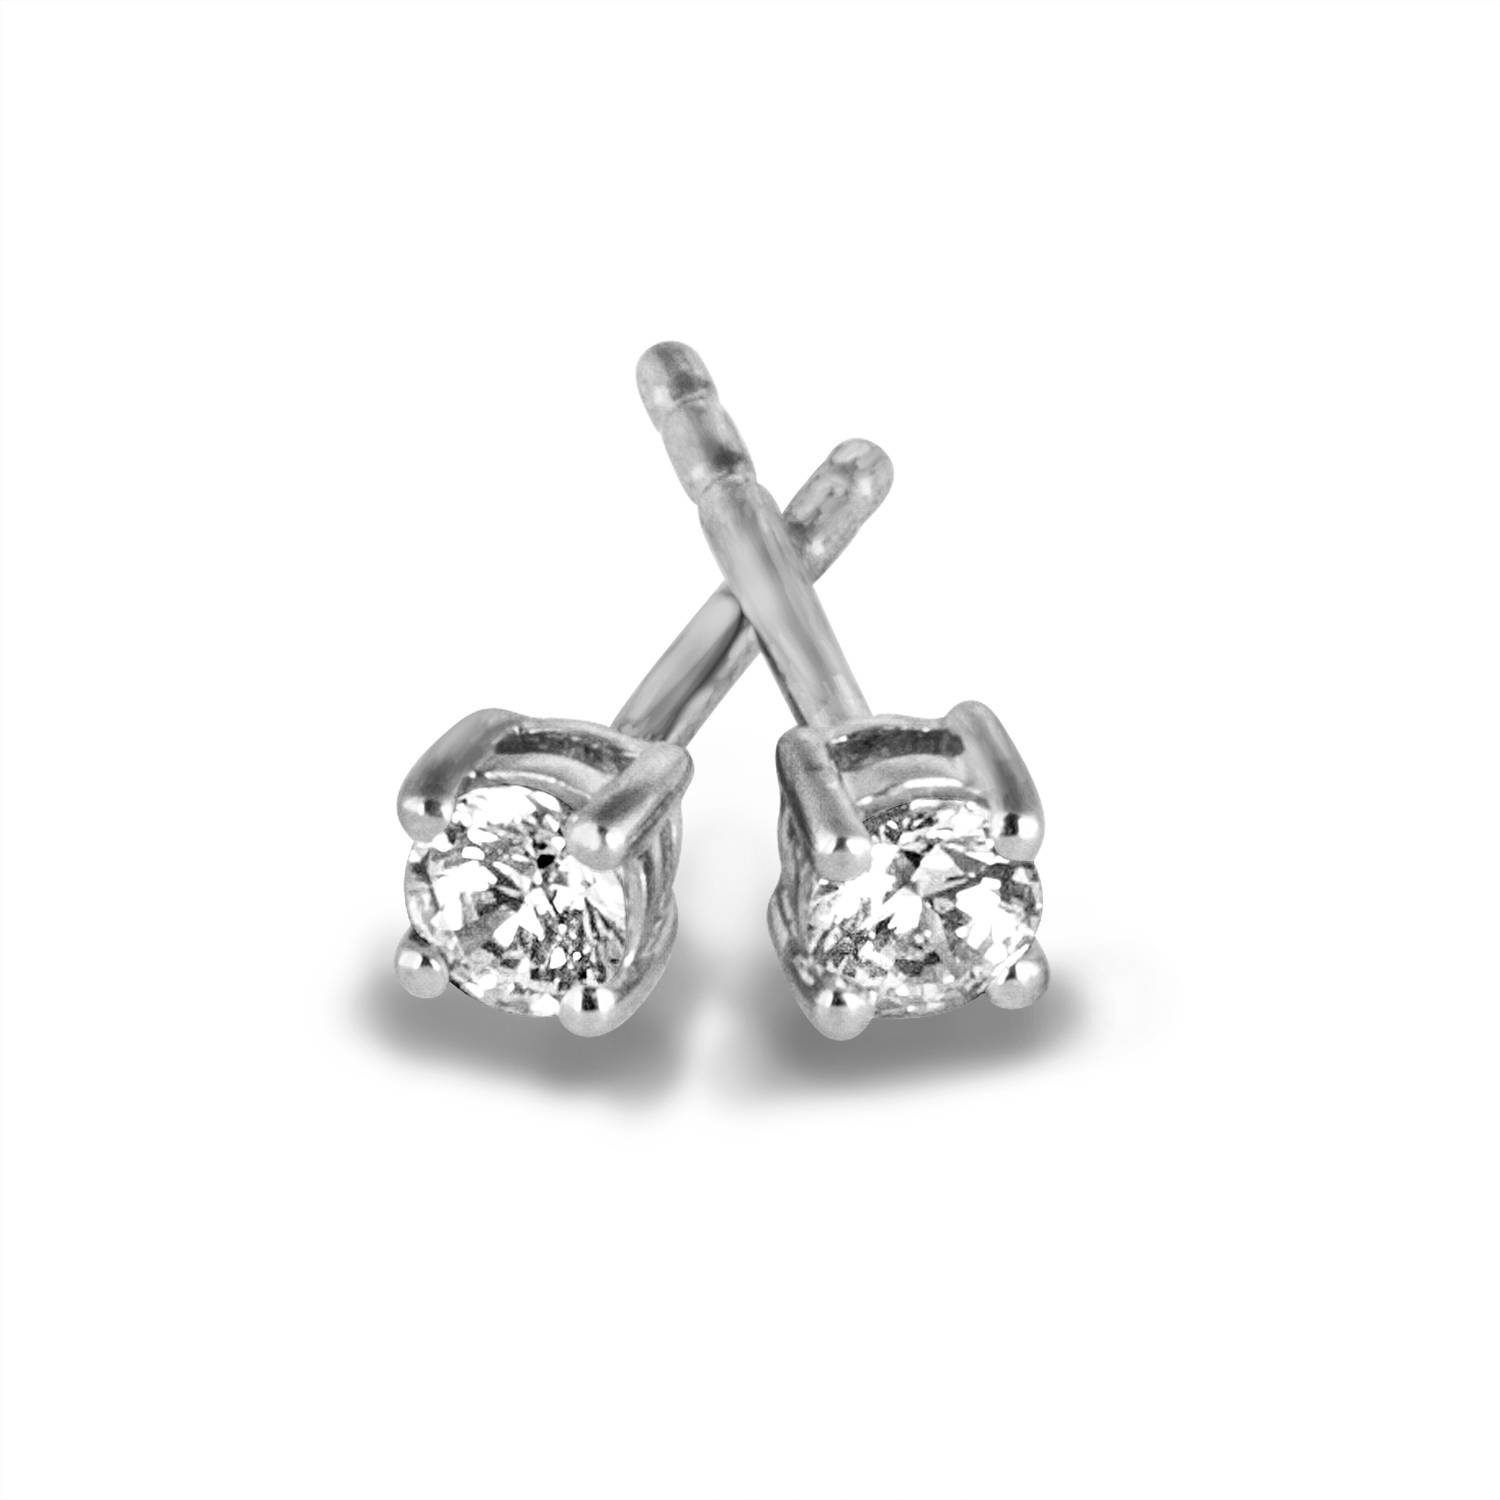 Unbranded Sterling Silver 1 5 Carat T W Round Diamond Stud Earrings